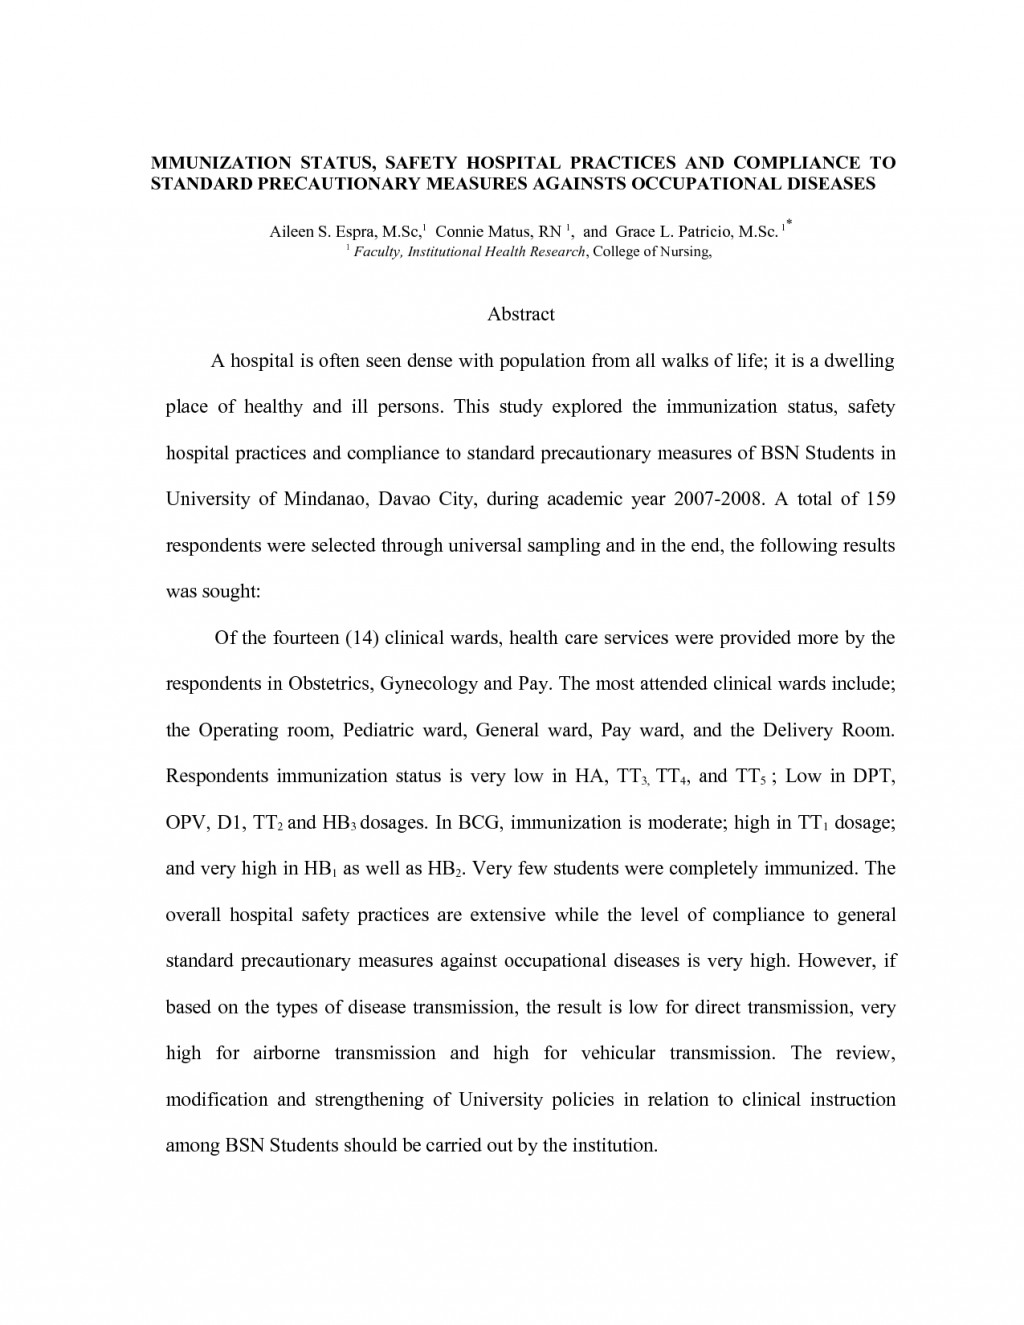 001 An Example Of Research Paper Abstract Incredible Writing A Apa Style Large